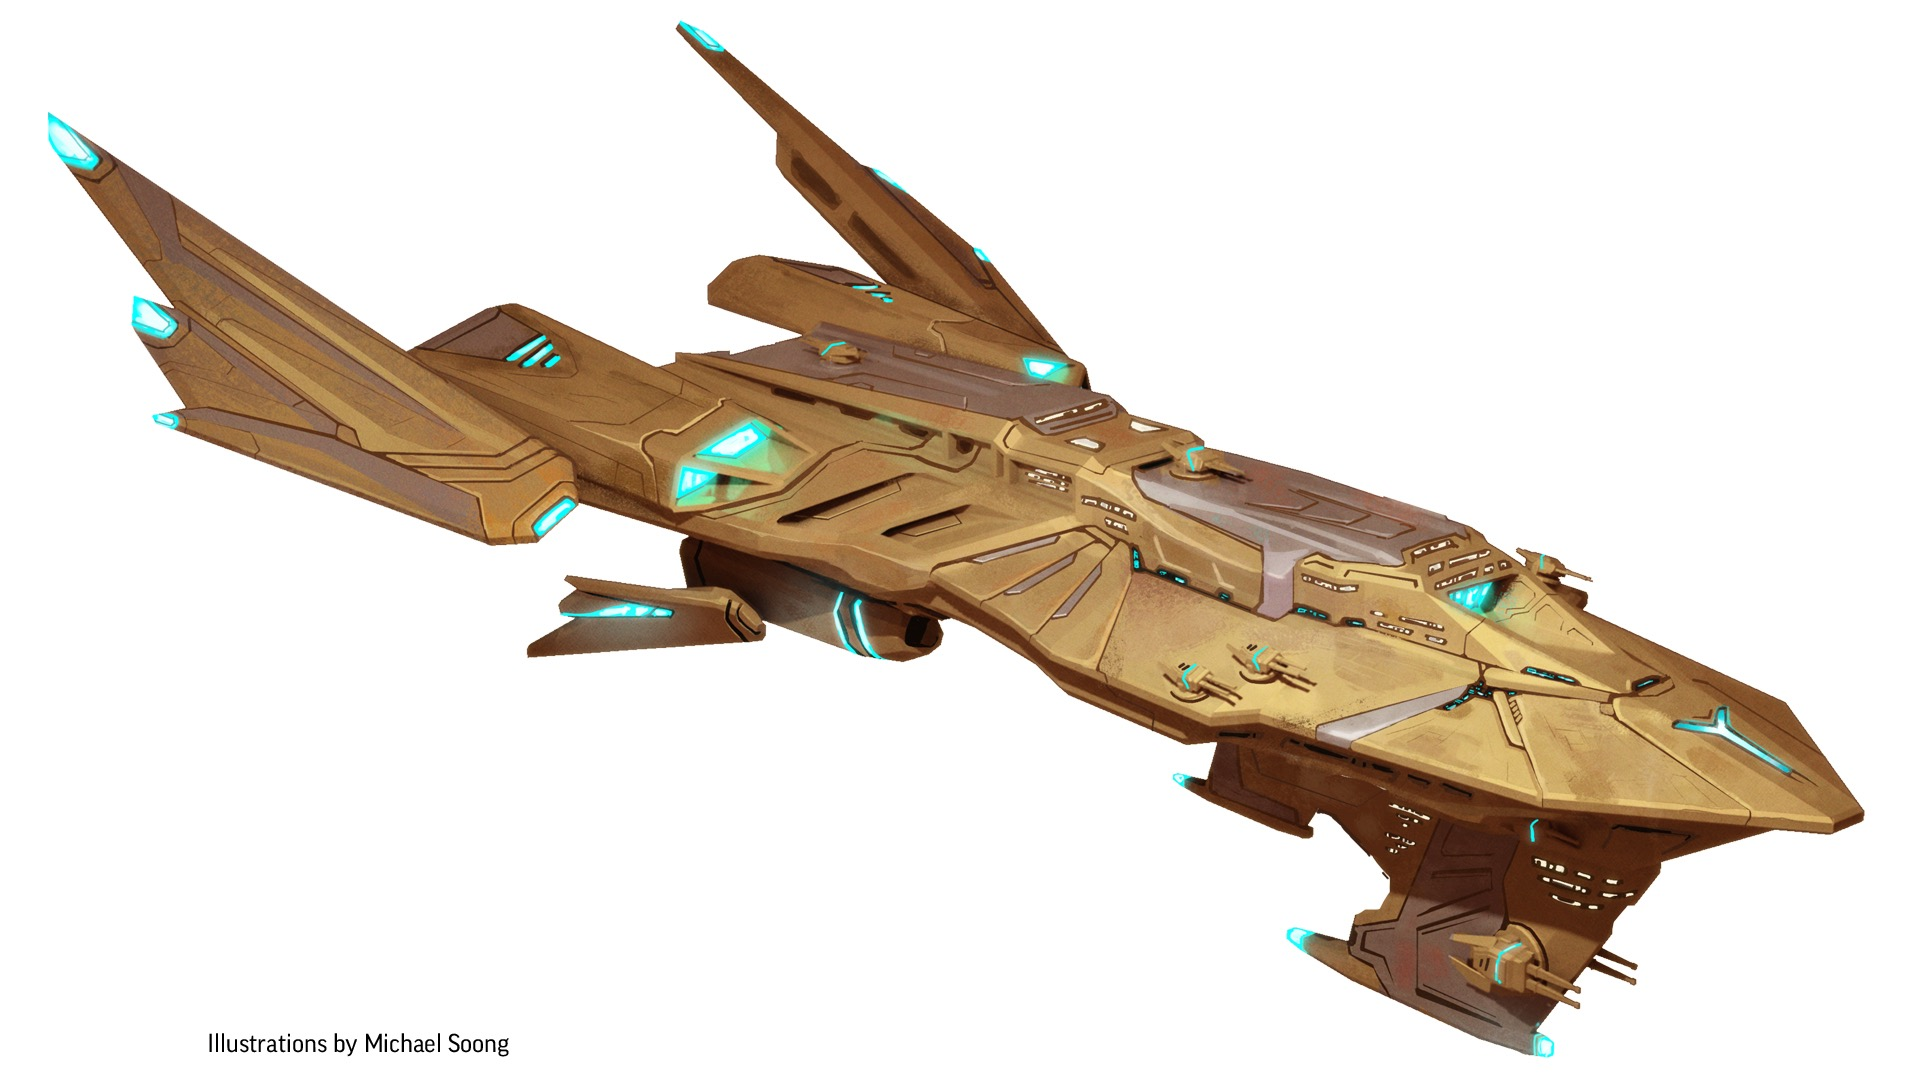 Starship illustrations by Michael Soong